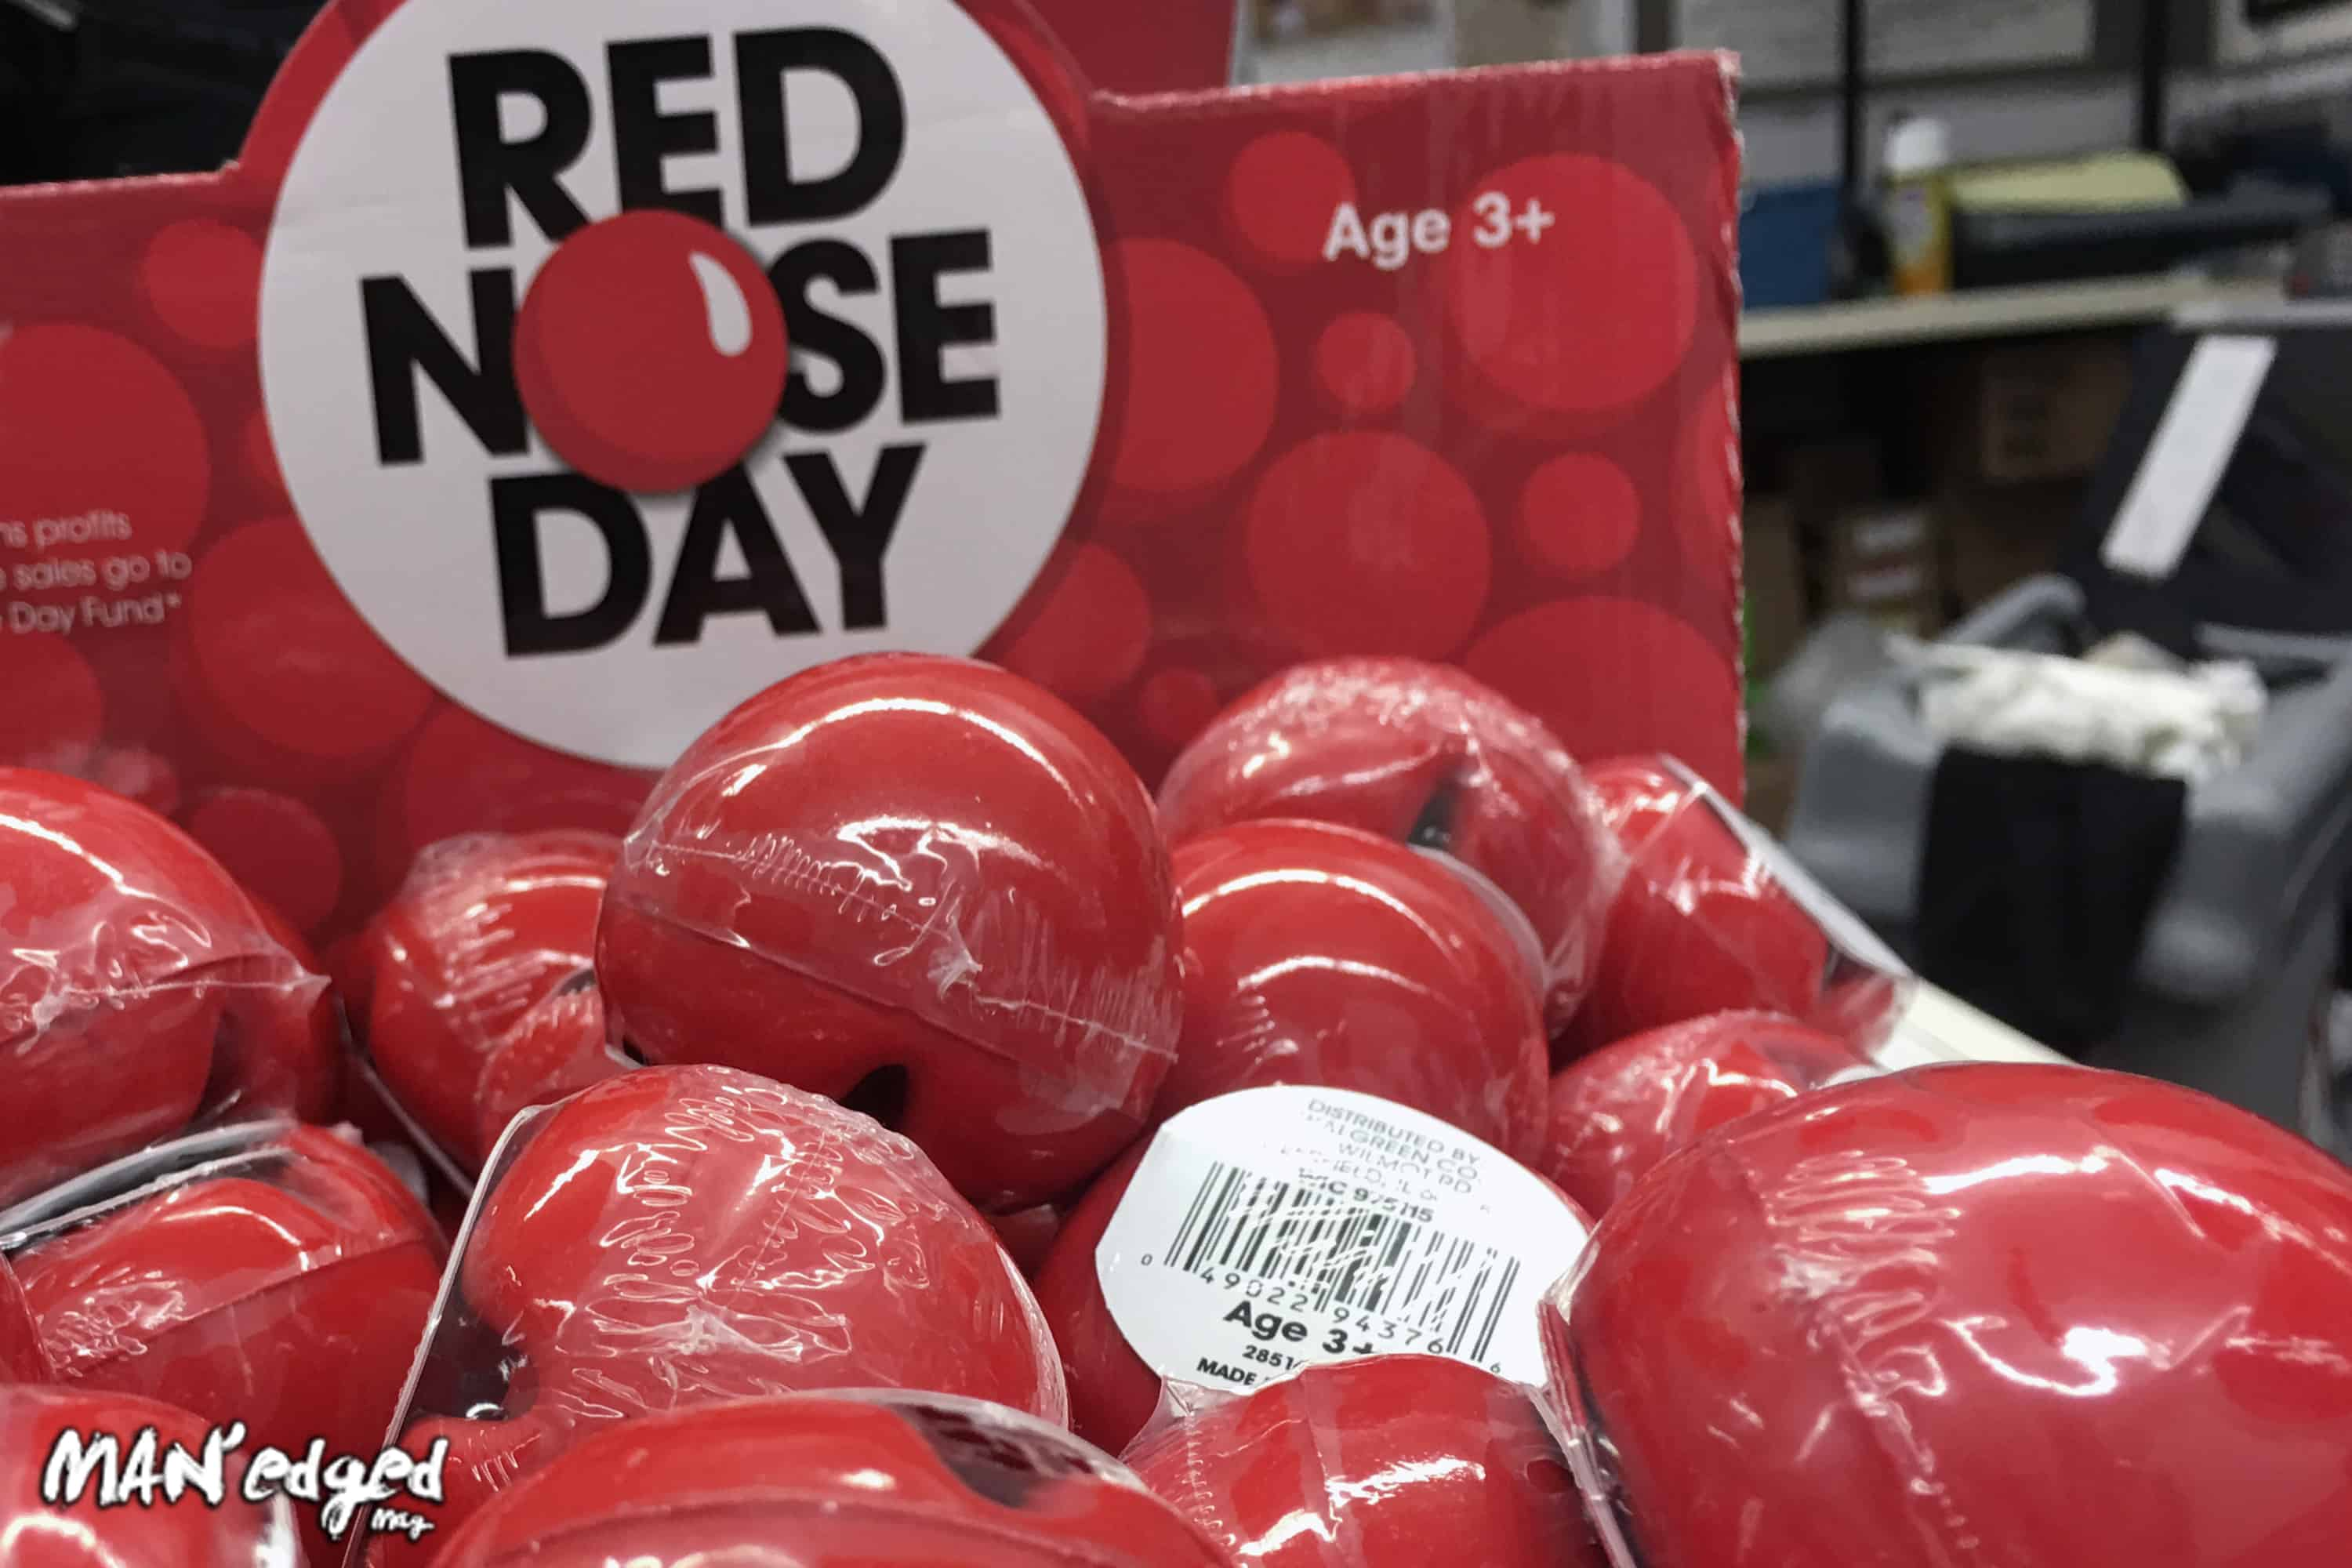 Red Noses sold Duane Reade for Red Nose Day